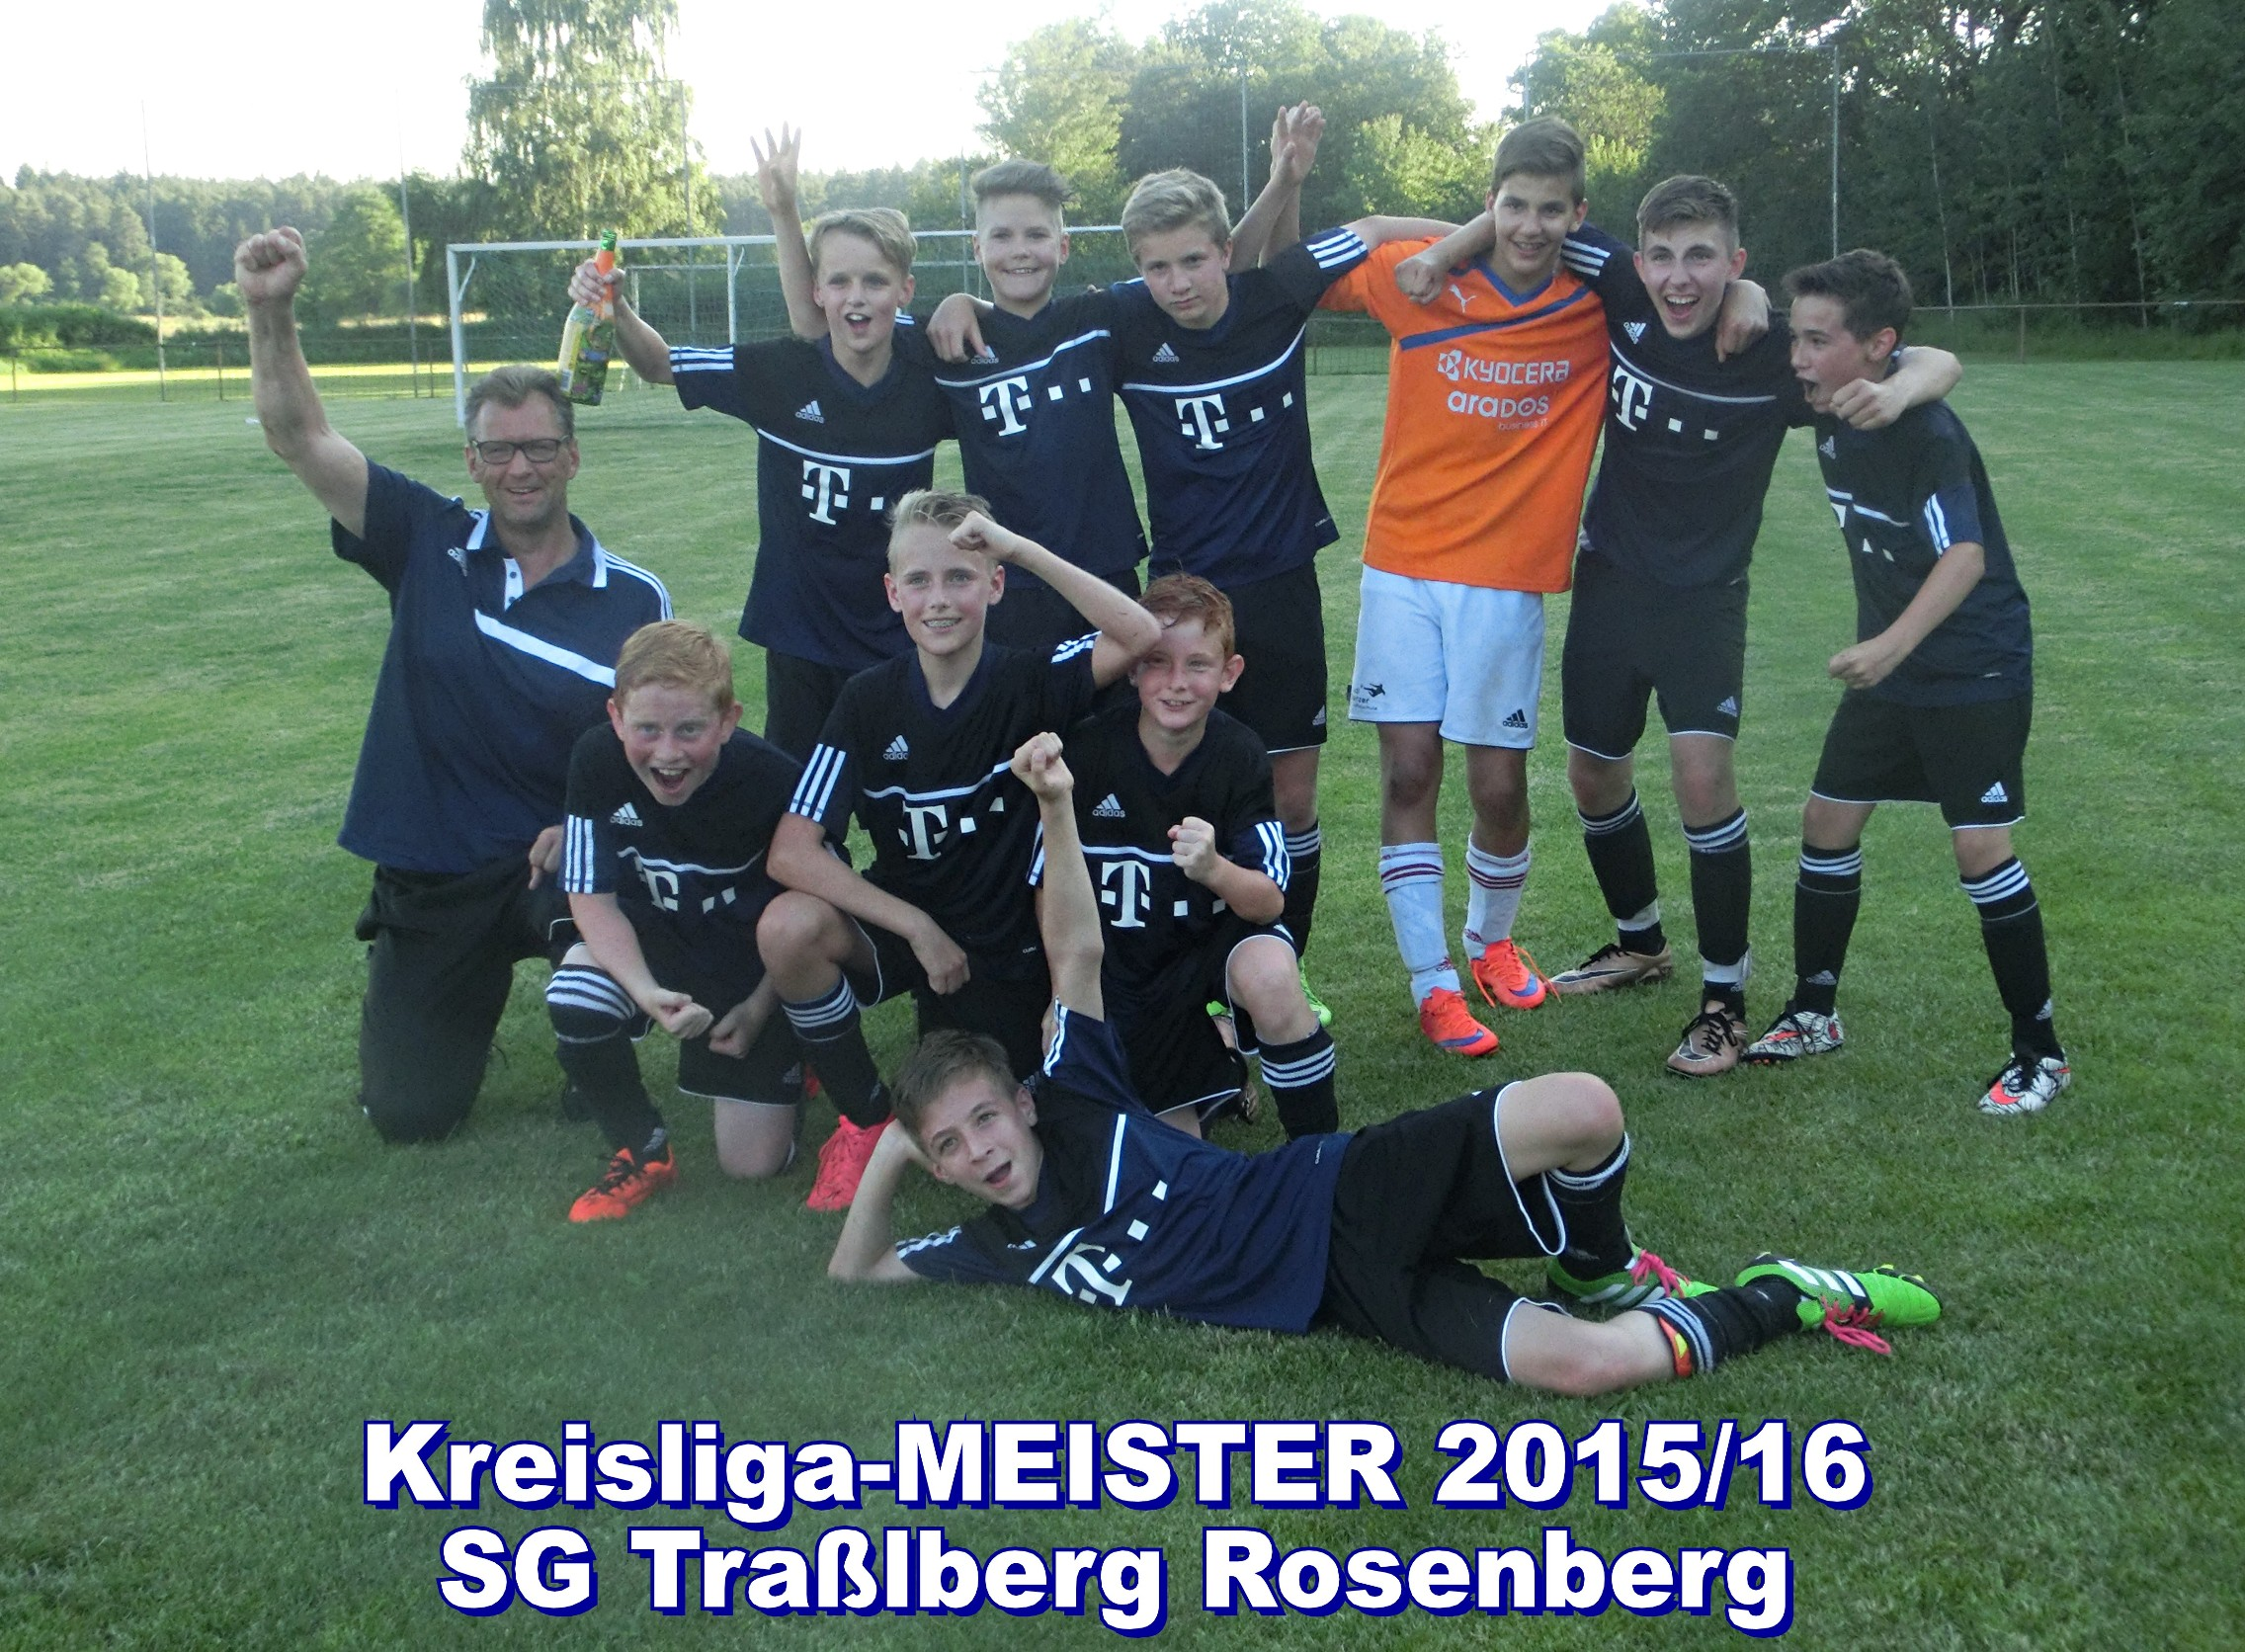 meister 2015